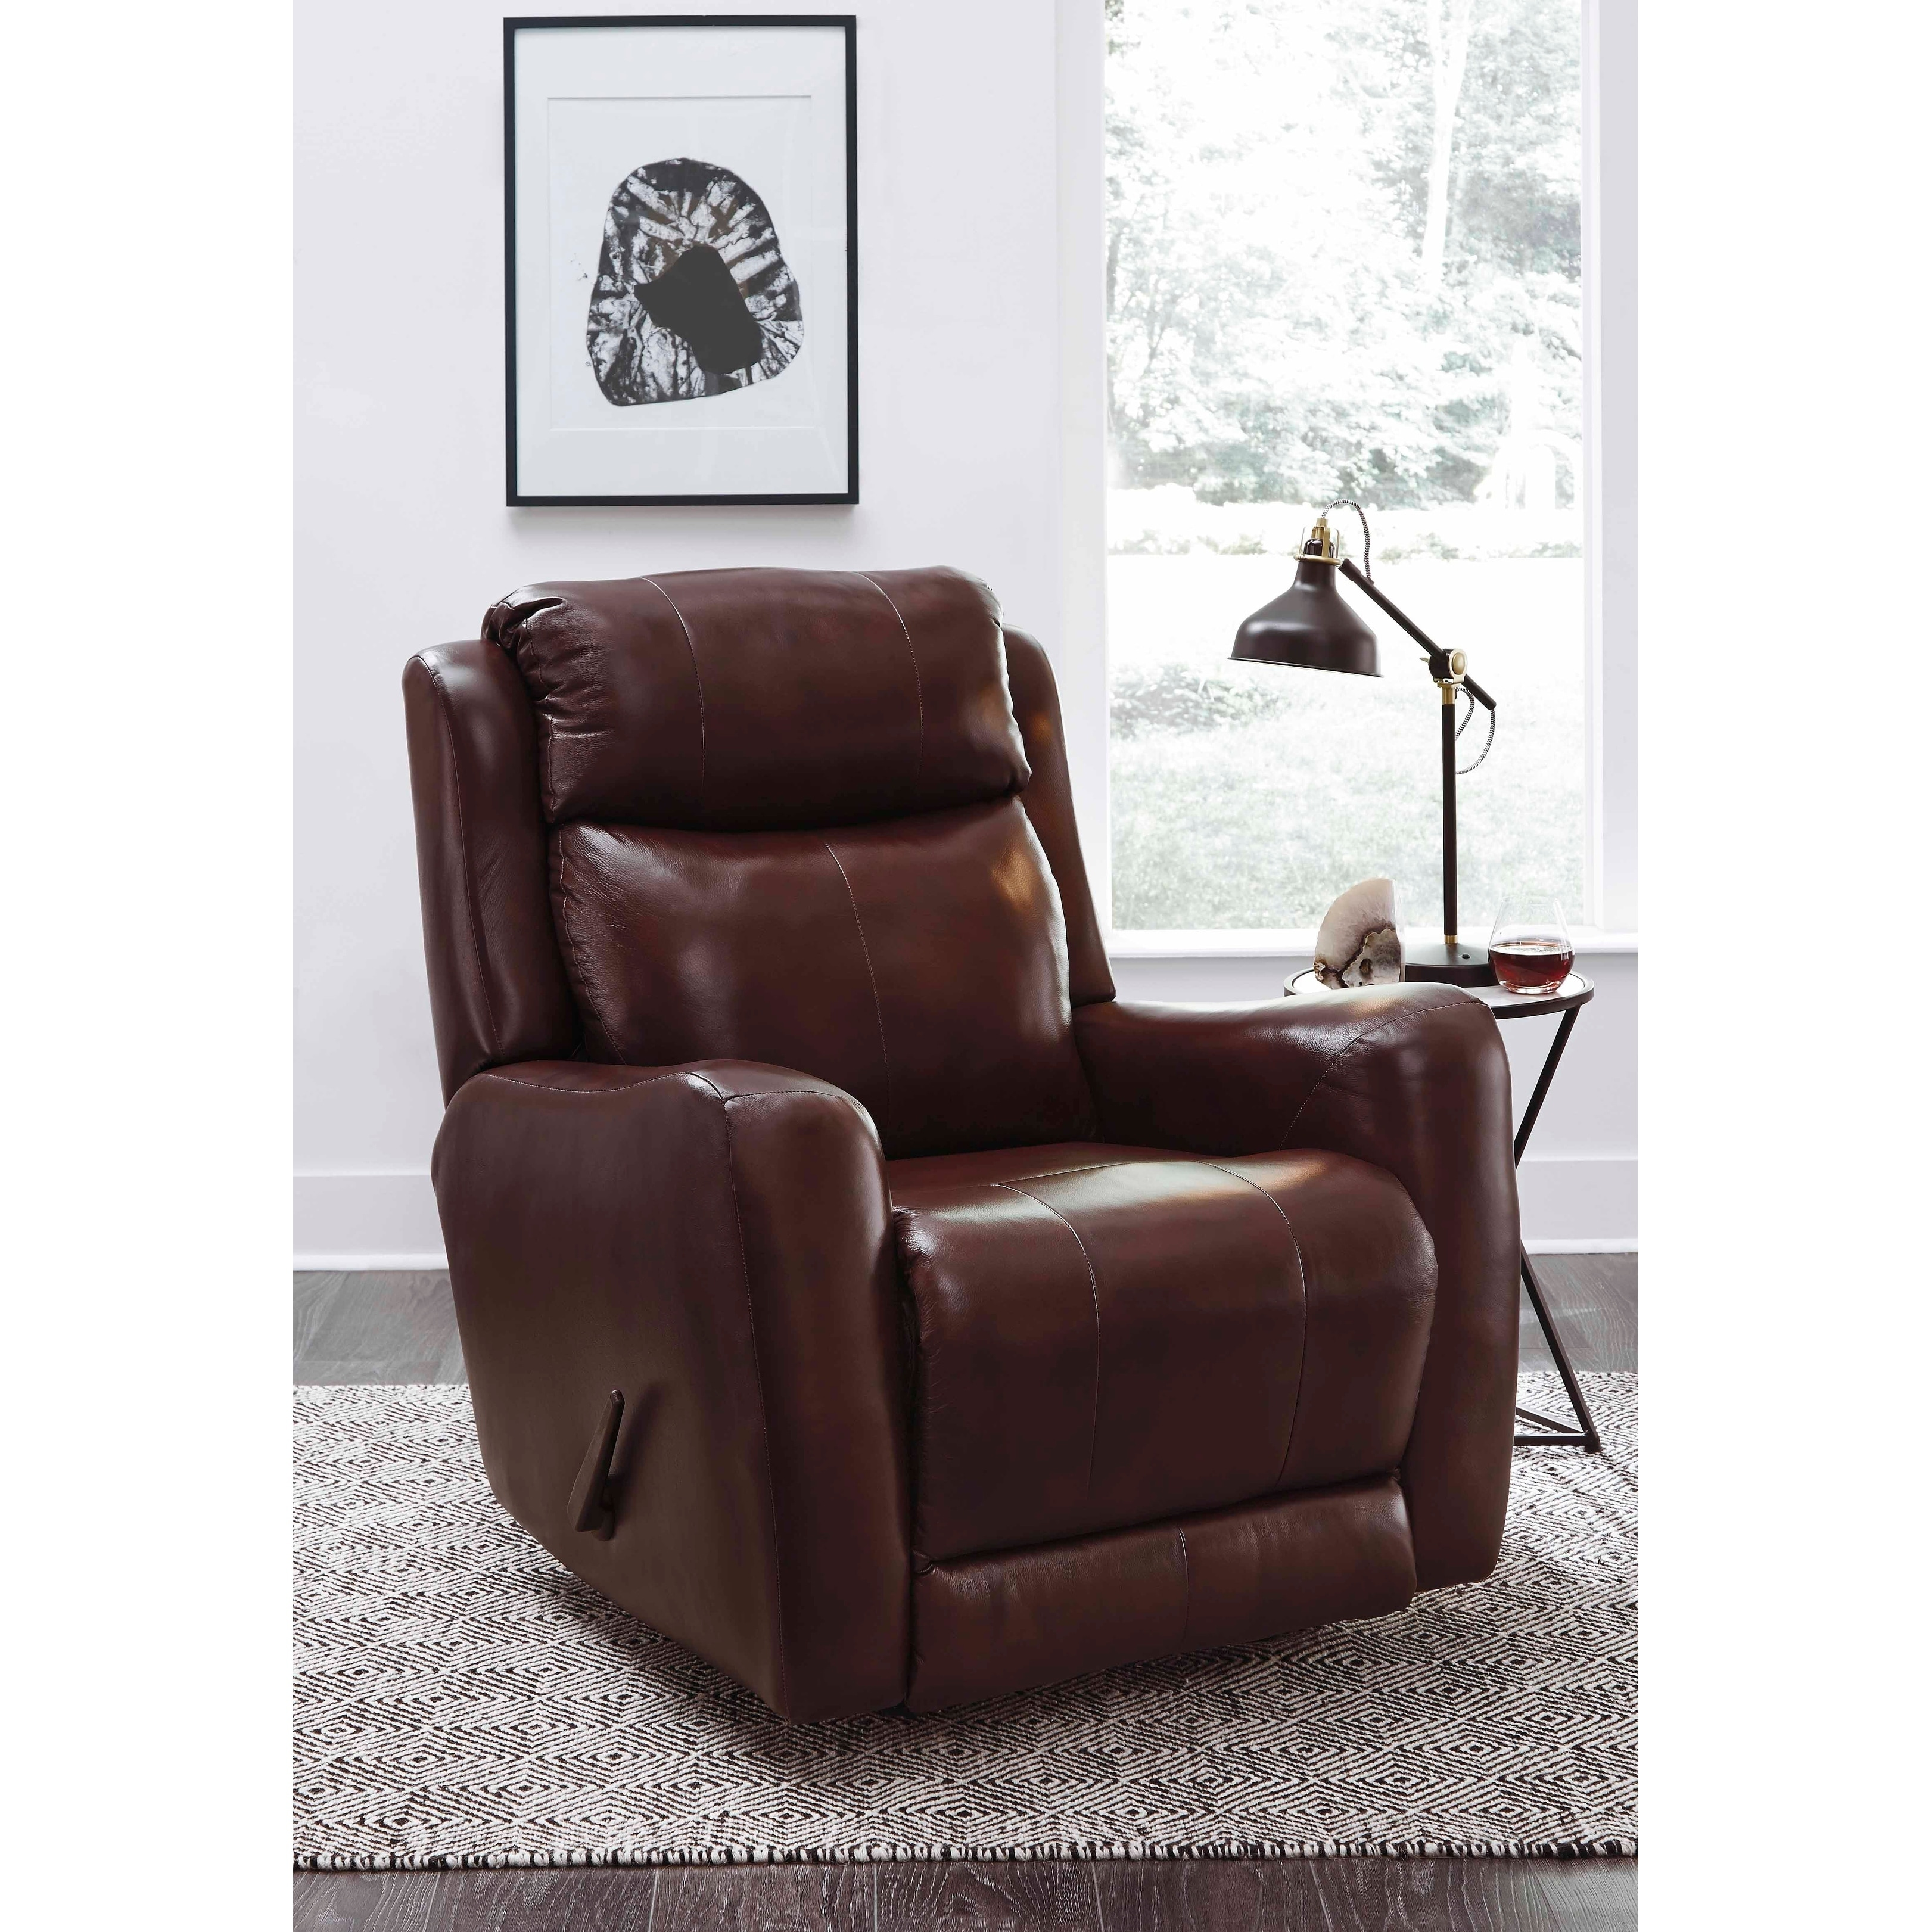 Swivel Rocker Recliner Chair Southern Motion S View Point Brown Leather Swivel Rocker Recliner